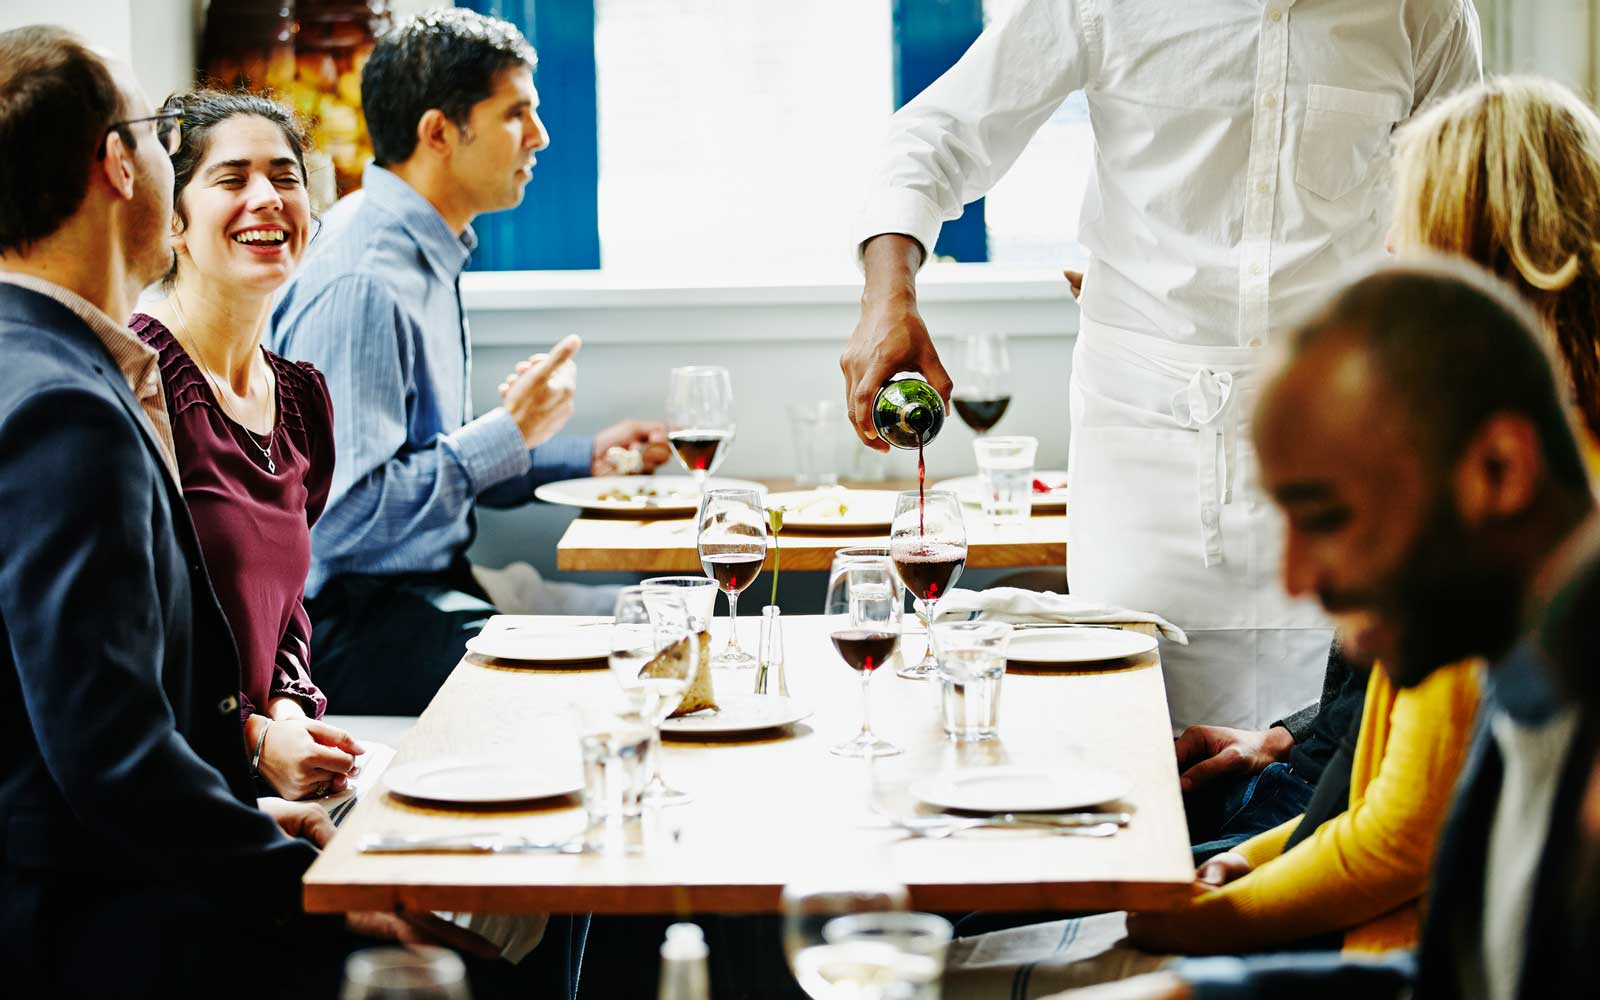 People dining in restaurant